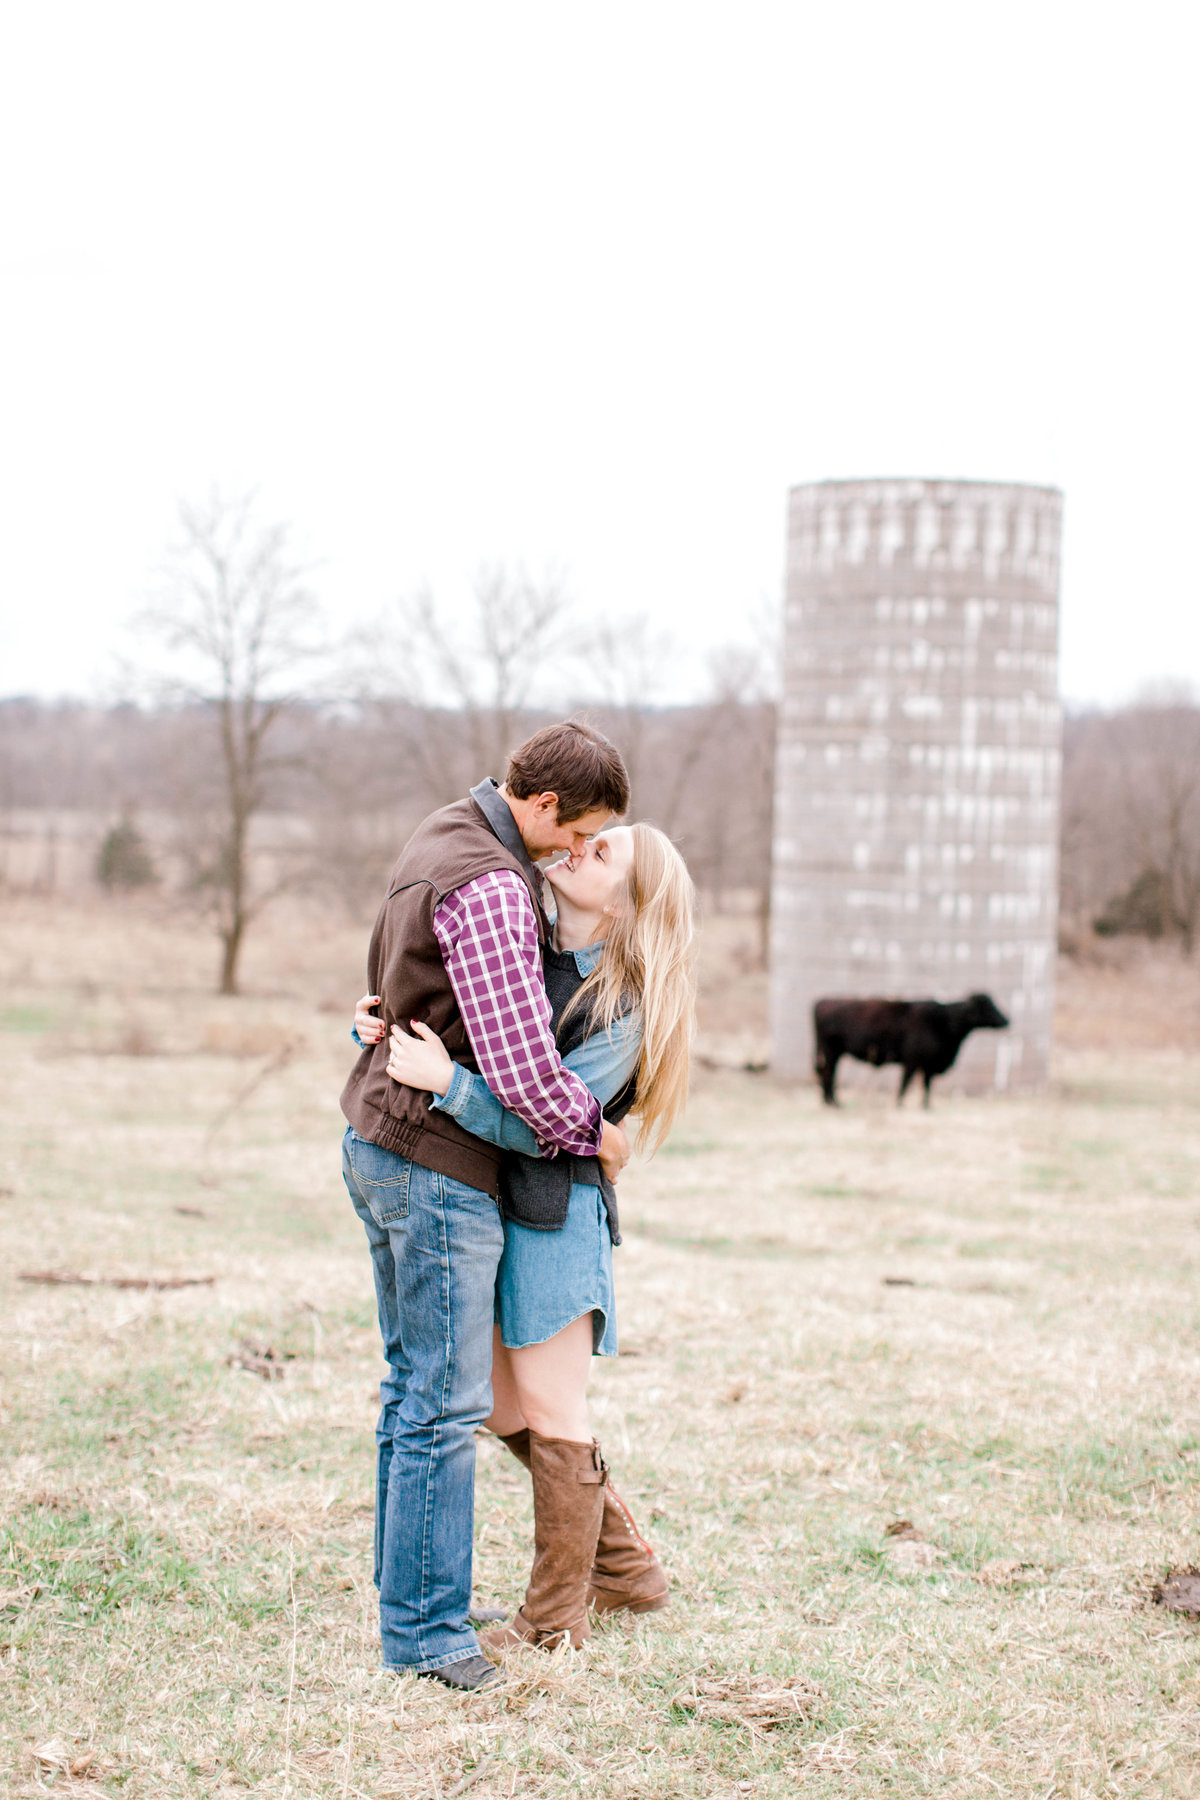 Melanie Foster Photography - Norman Oklahoma Senior and Engagement Photographer - Couple Engagement Photo - 11